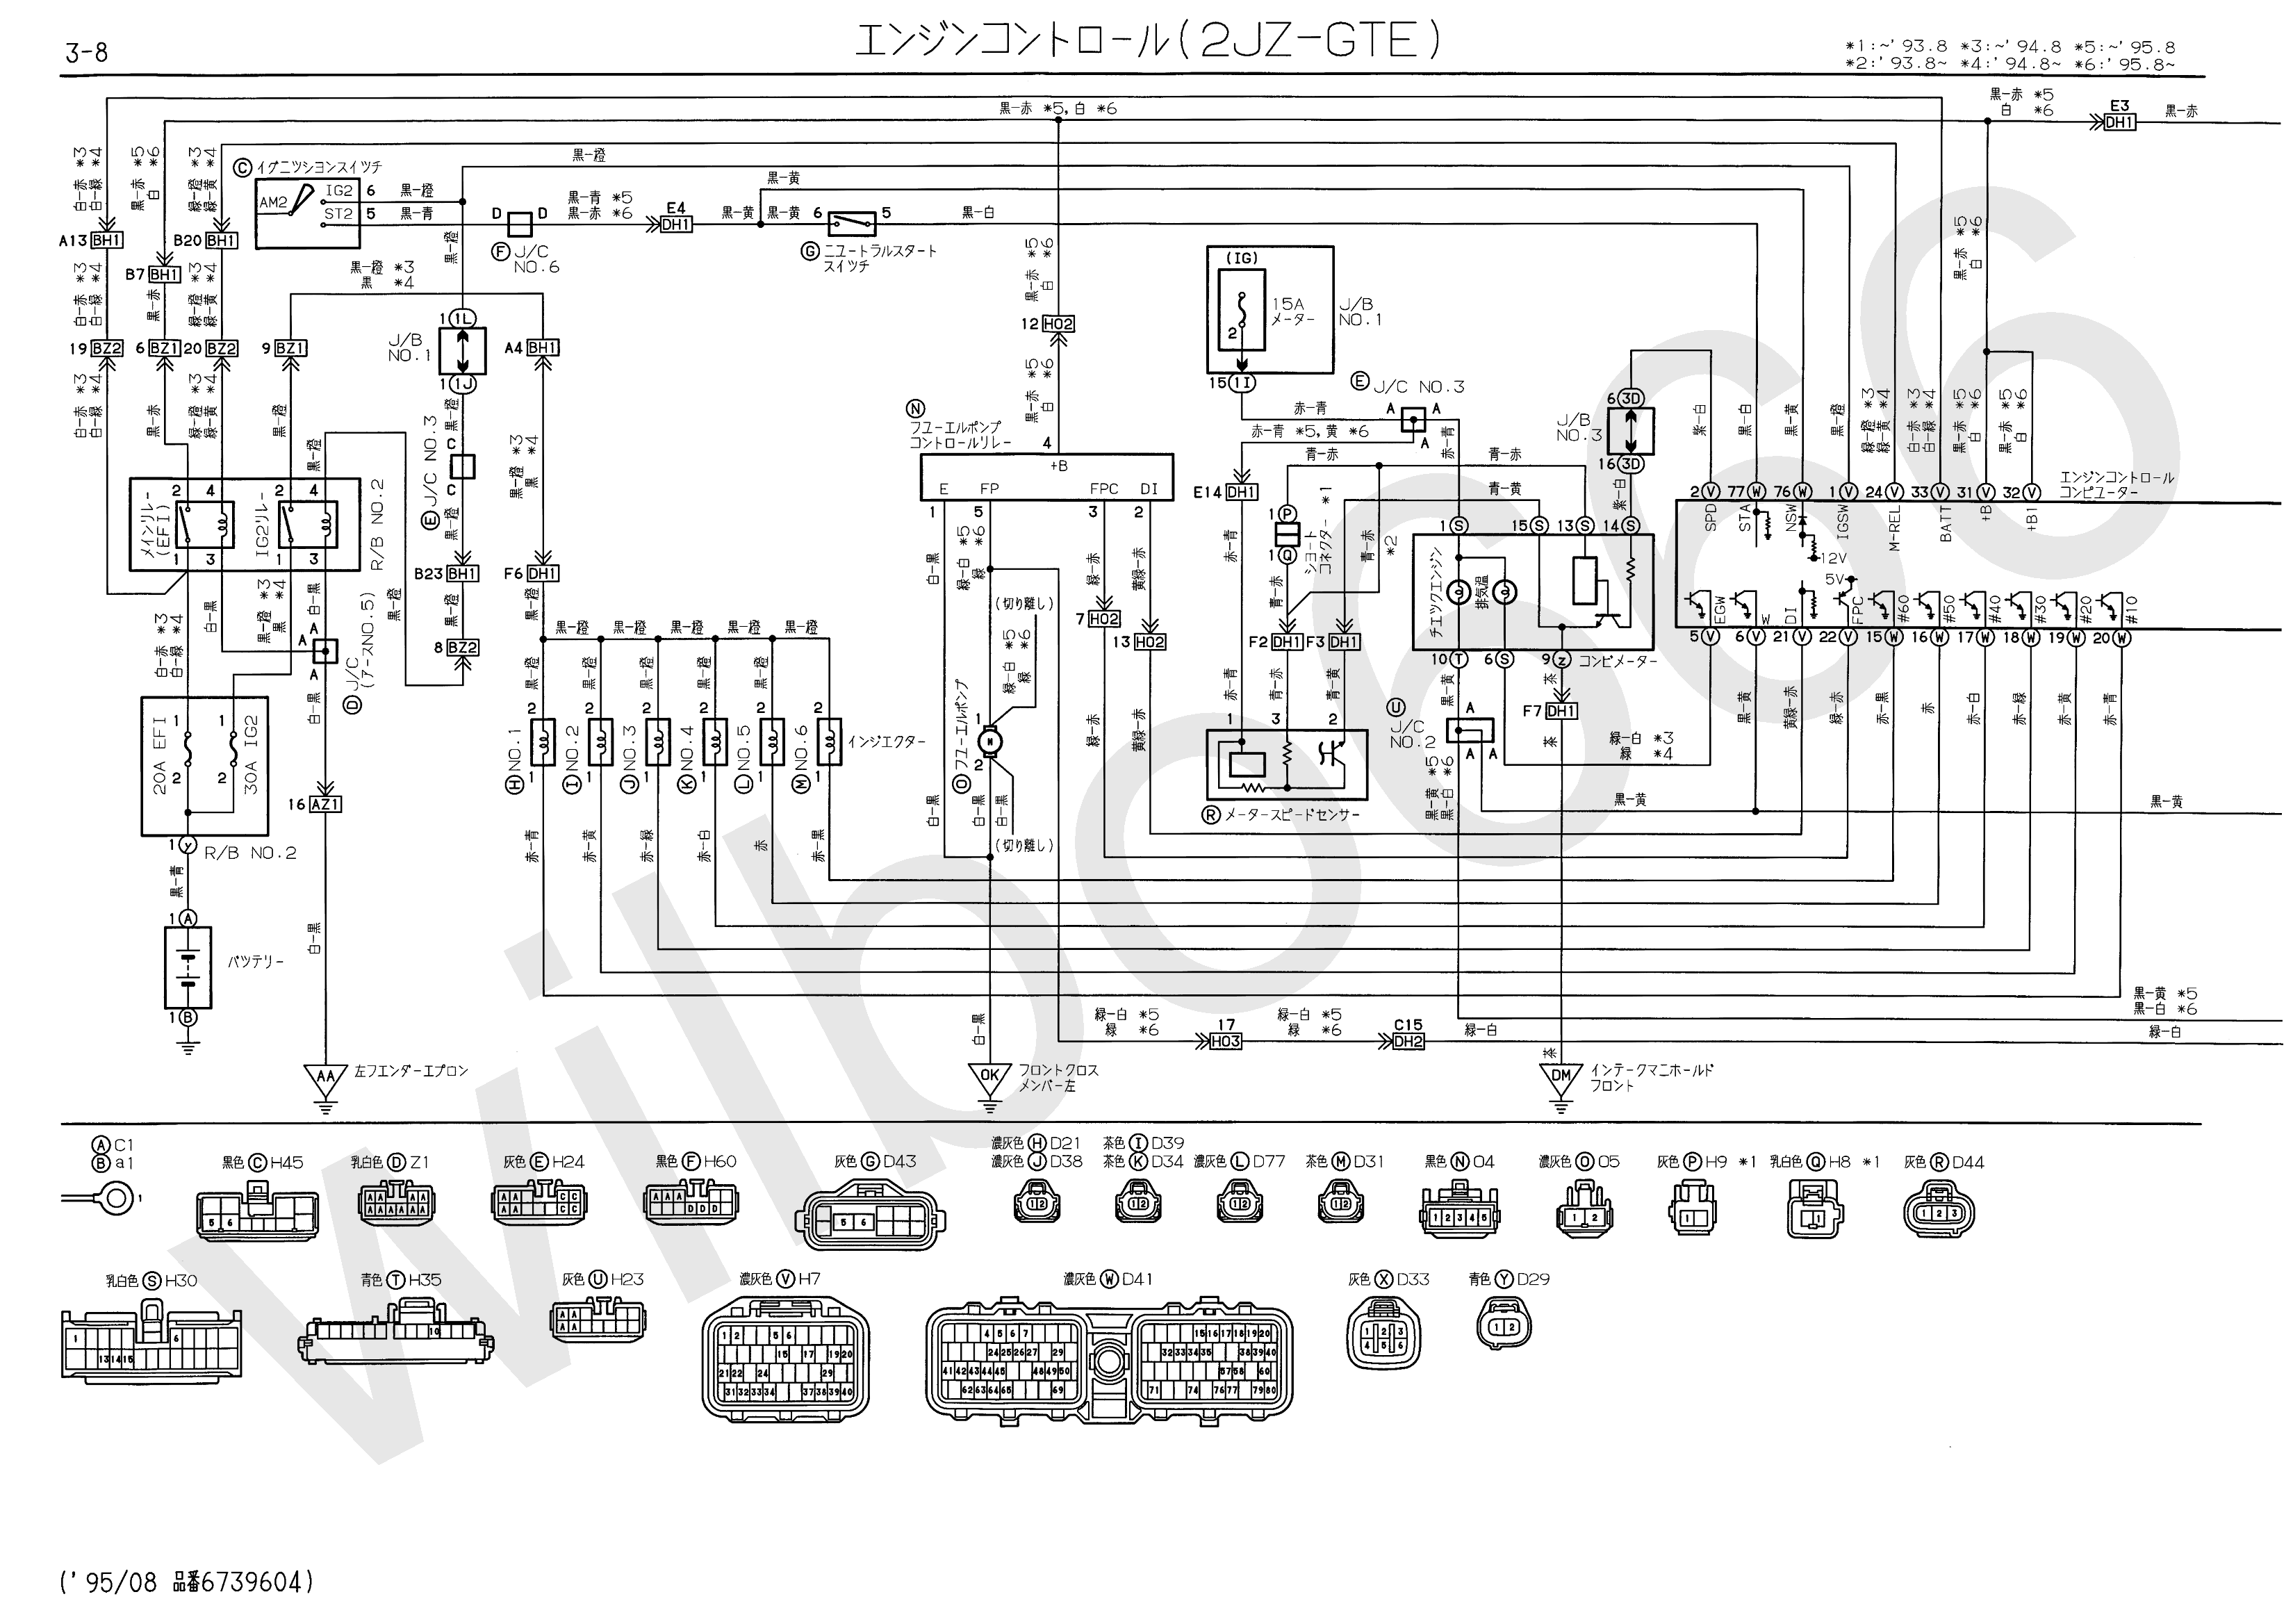 Wilbo666 2jz Gte Jzs147 Aristo Engine Wiring Ford Ignition System Diagram Toyota Diagrams